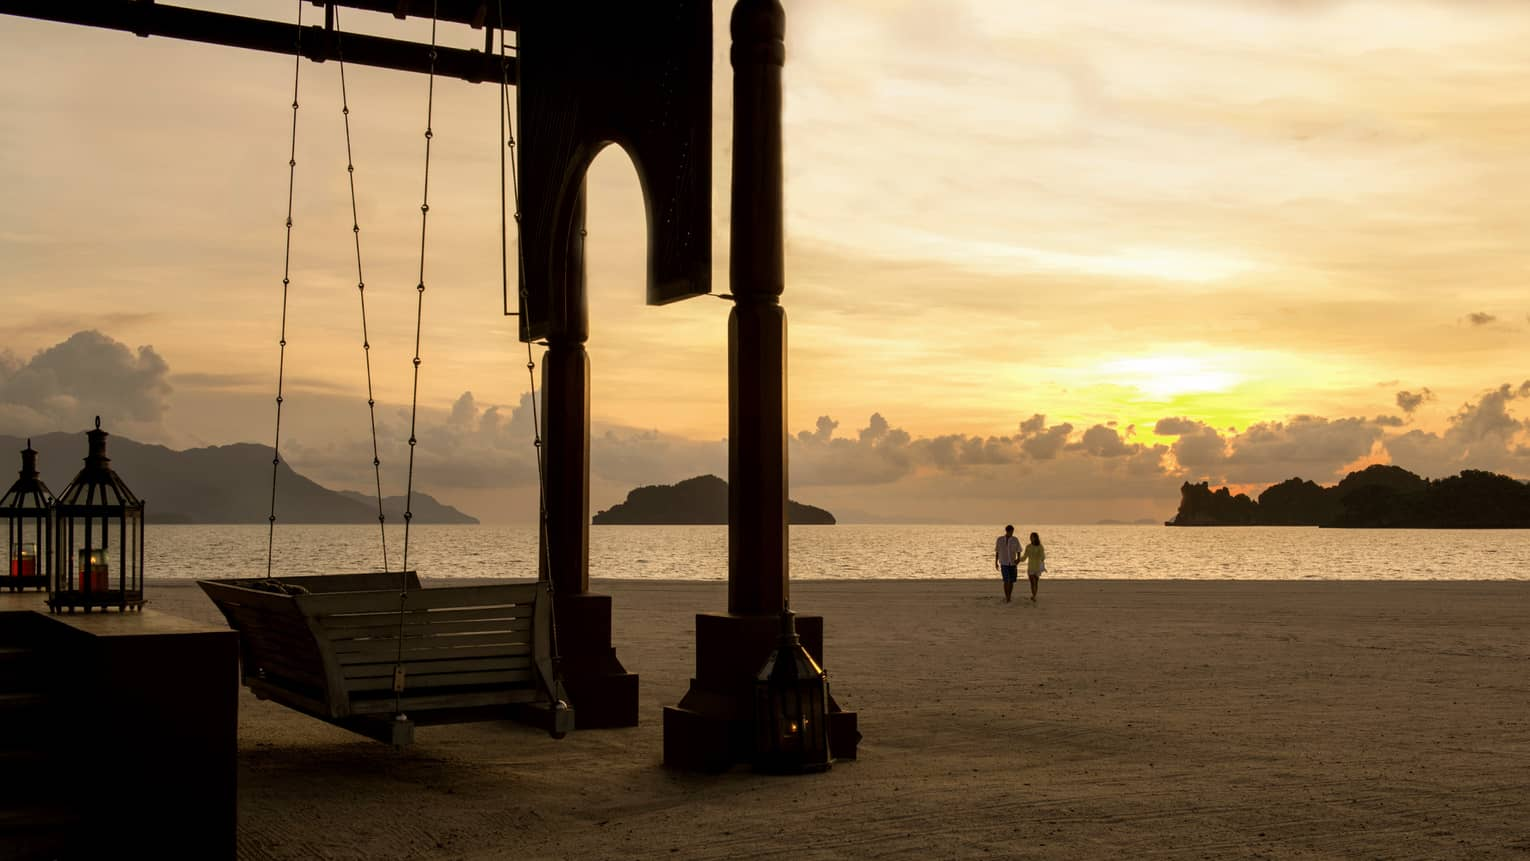 Silhouettes of couple walking along beach past wood swing, pavillion at sunset